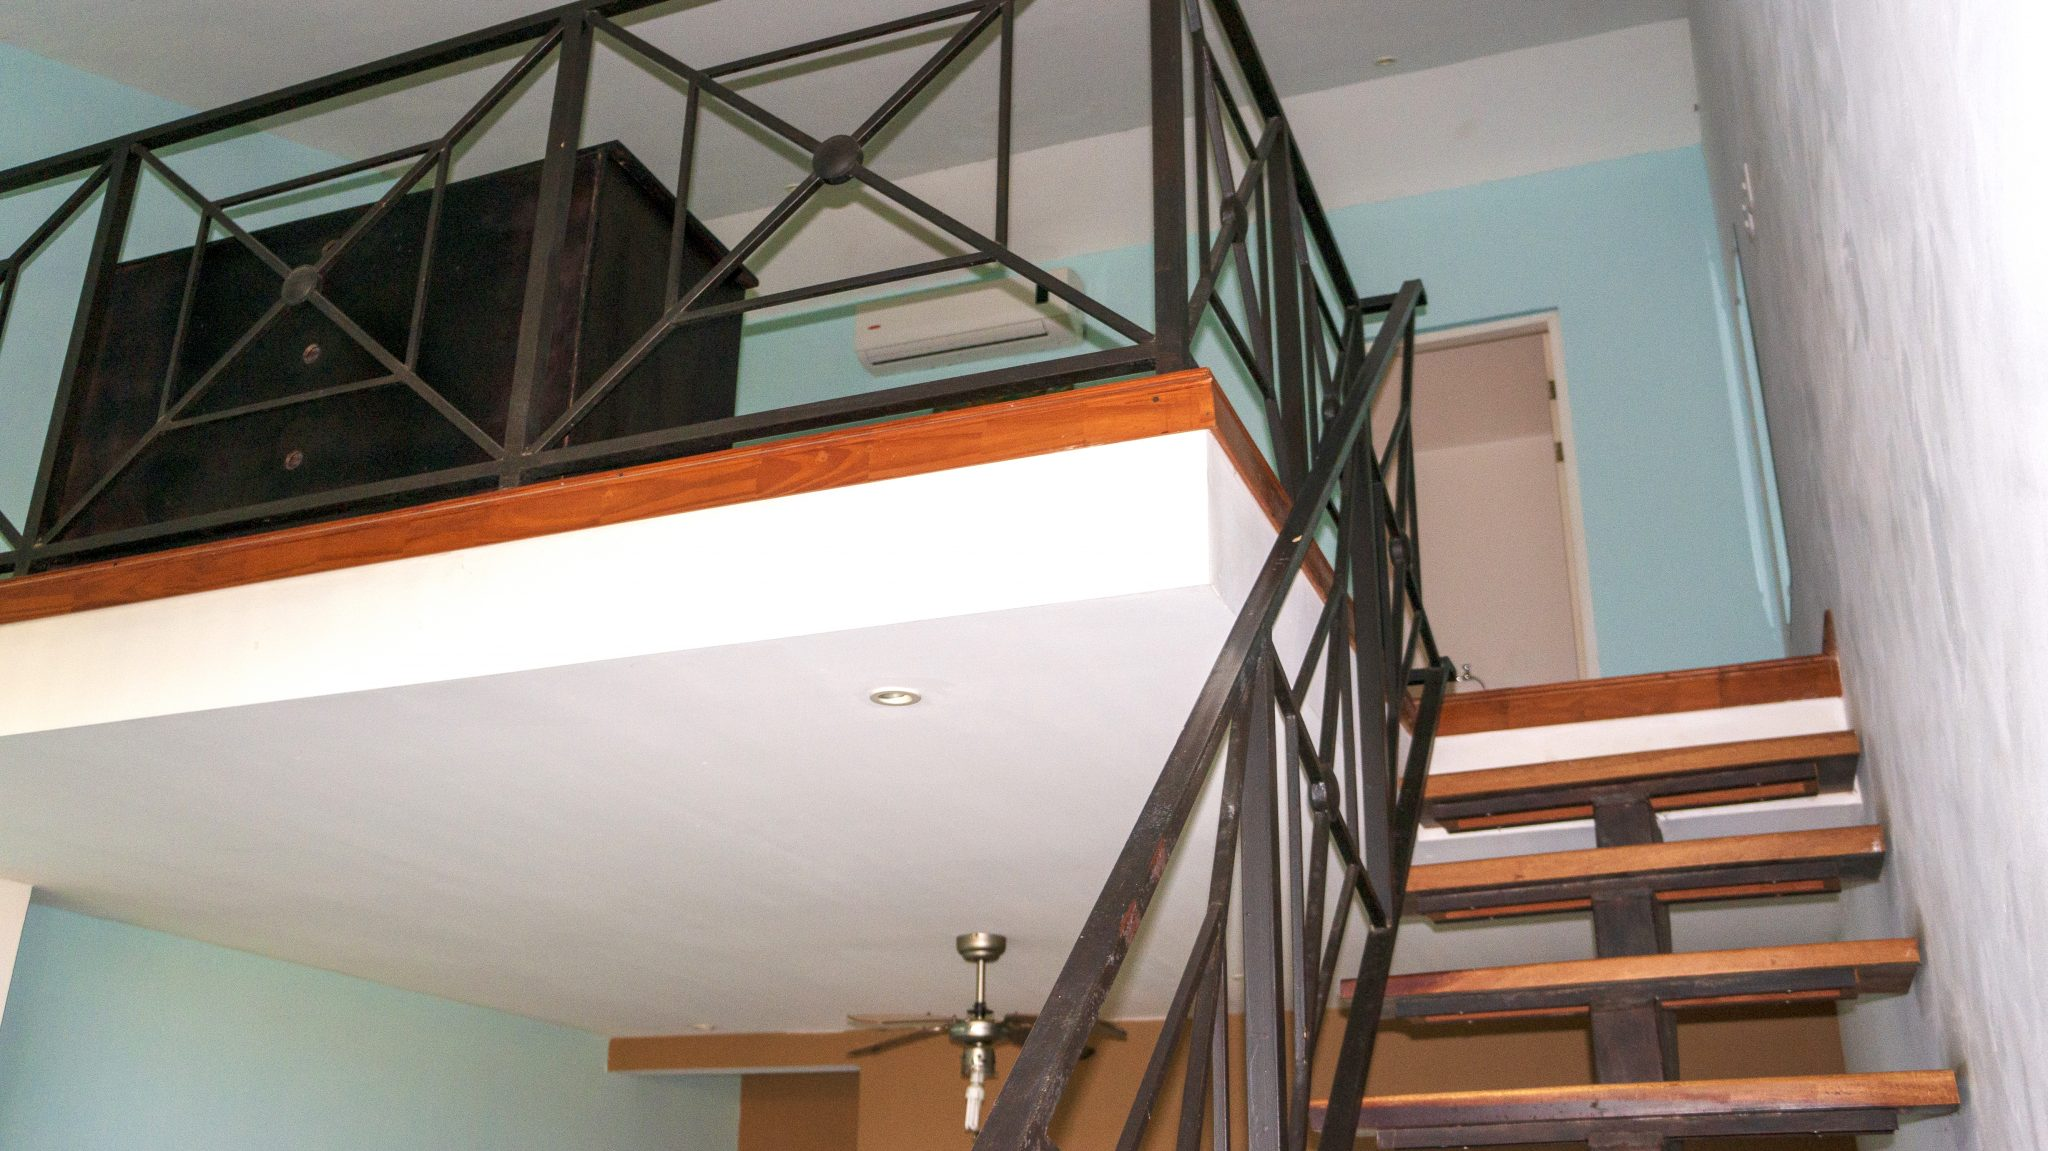 PL4 - Stairs to Loft Bedroom